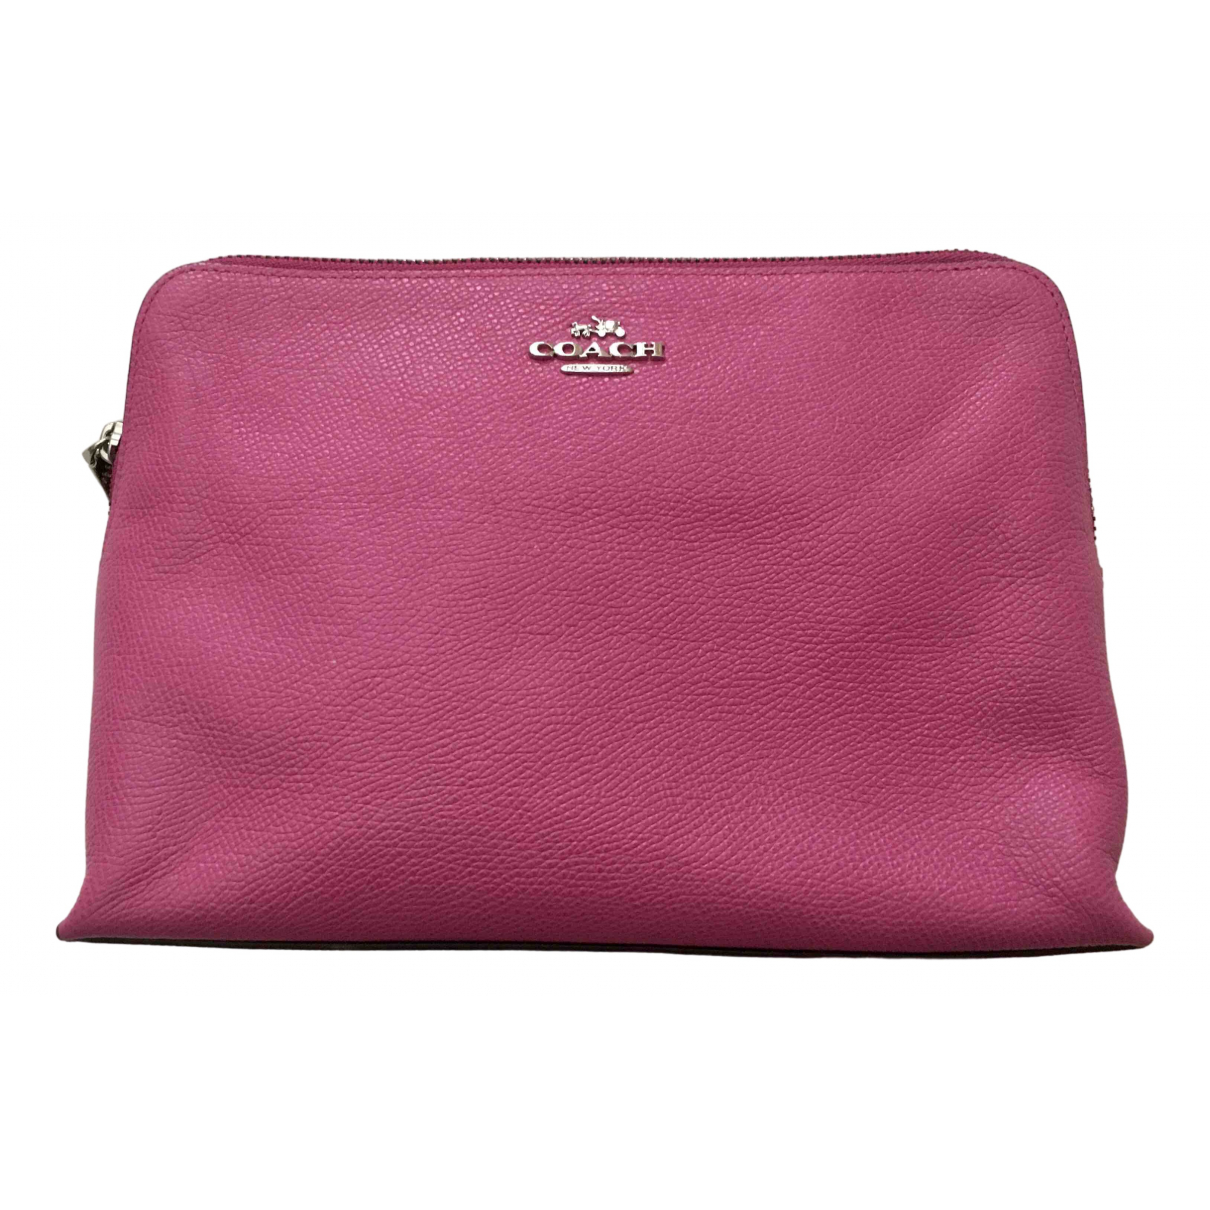 Coach \N Pink Leather Travel bag for Women \N